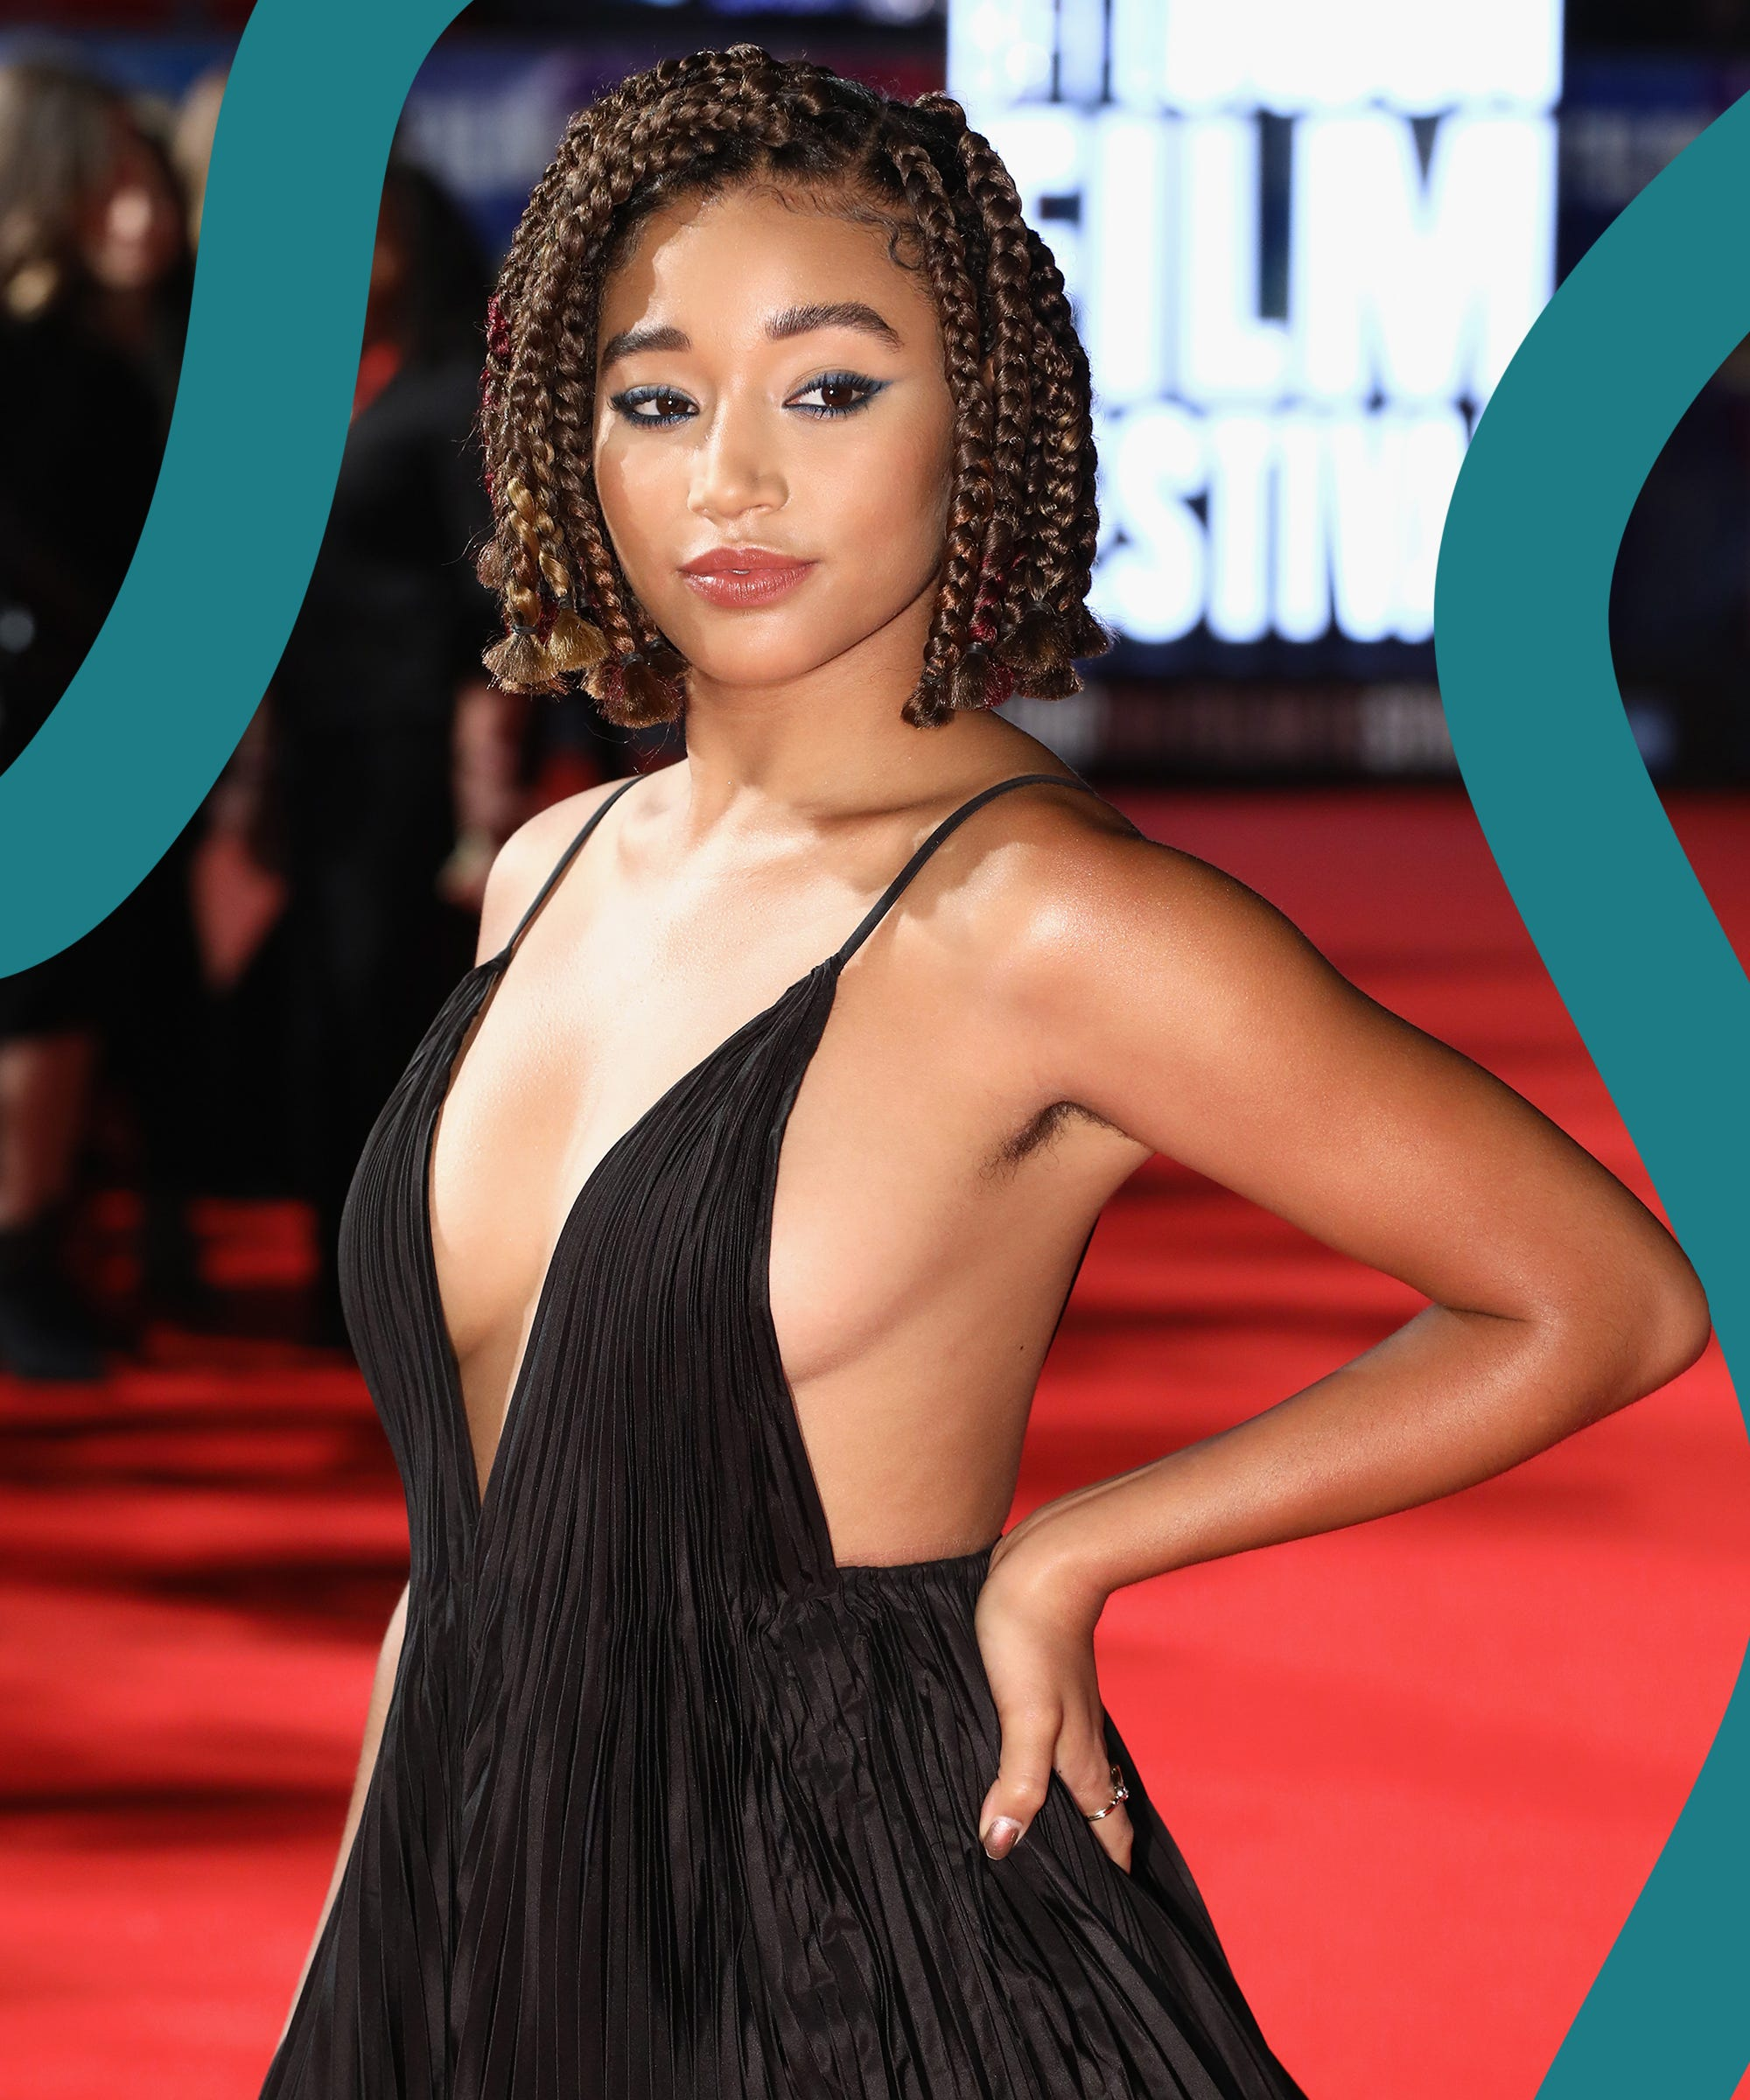 Amandla Stenberg Declares That Armpit Hair Belongs On The Red Carpet